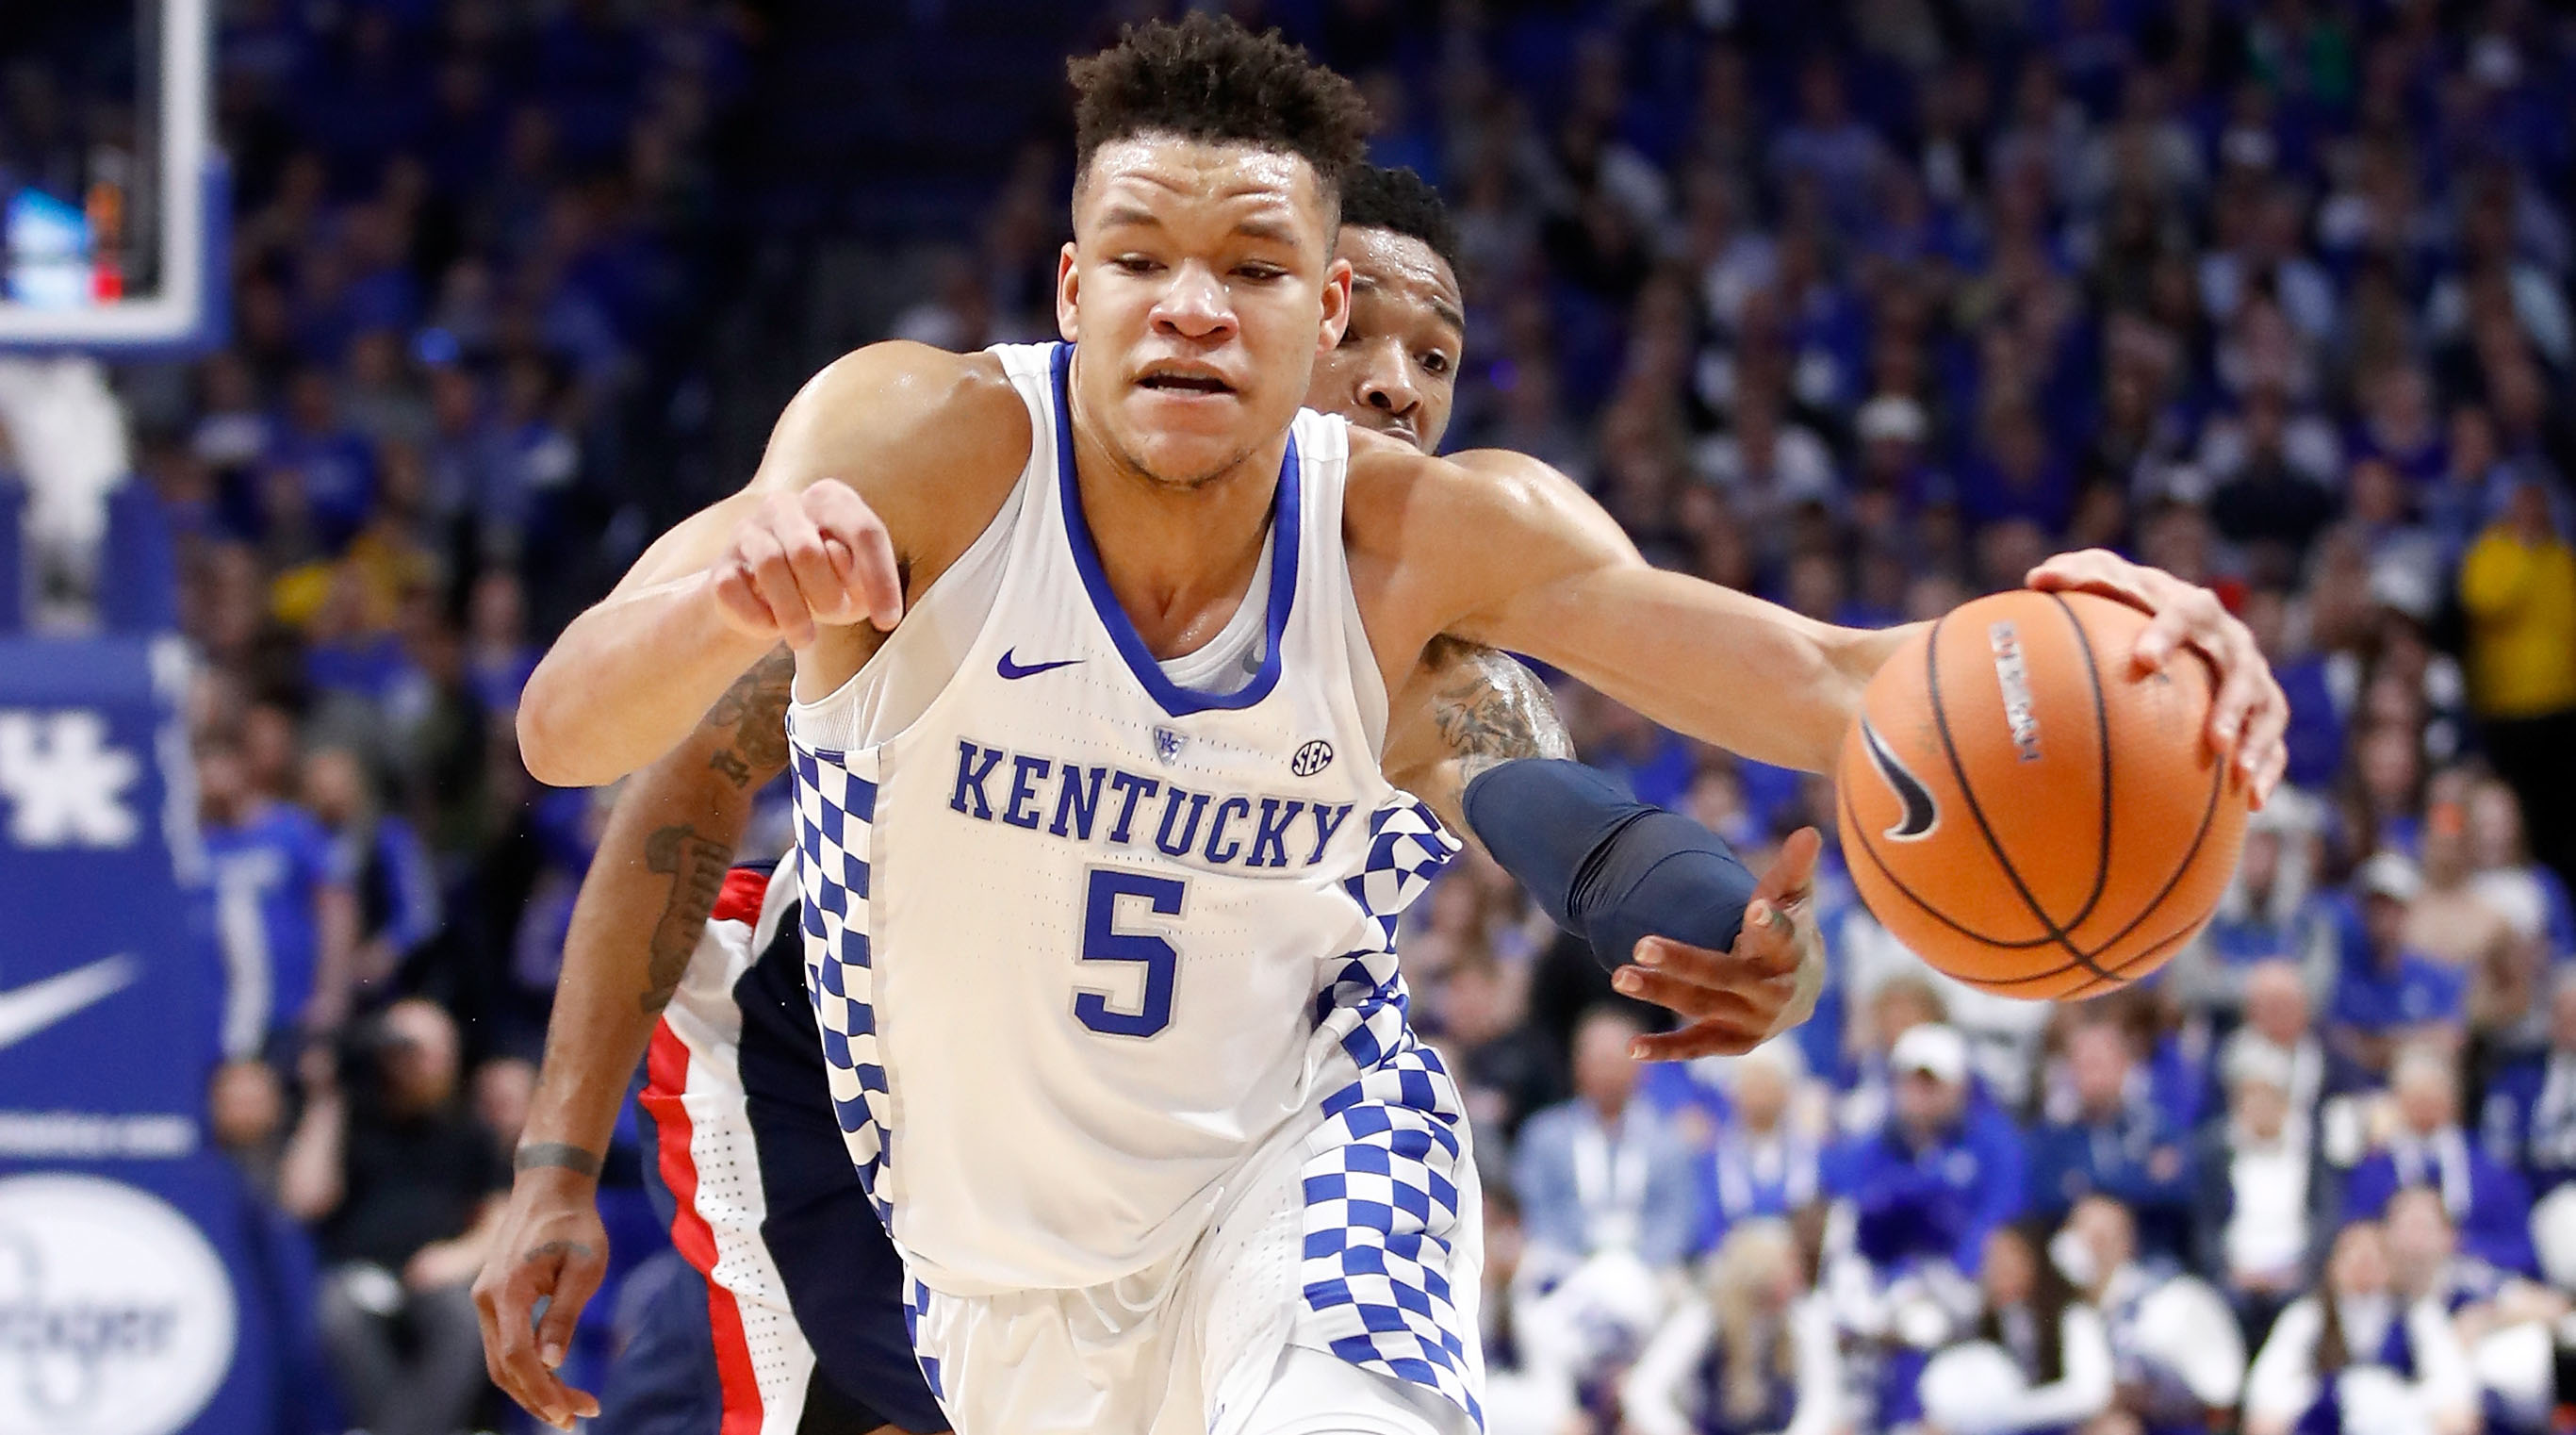 How To Watch Uk Basketball Play Etsu Game Time Tv: Uk Basketball Game Time